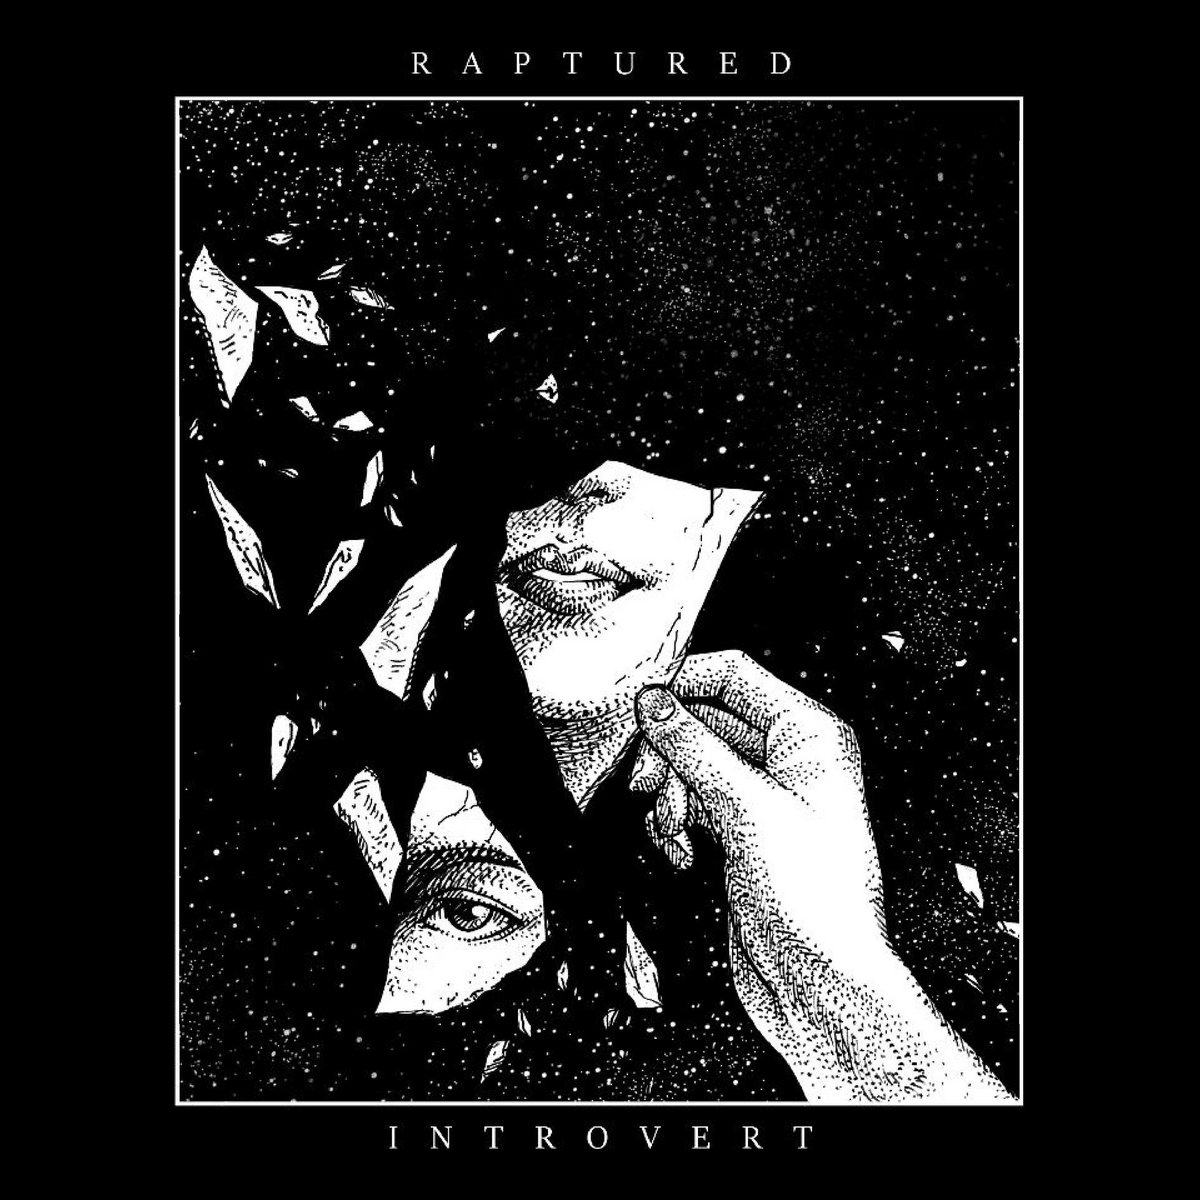 https://raptured.bandcamp.com/album/introvert-ep